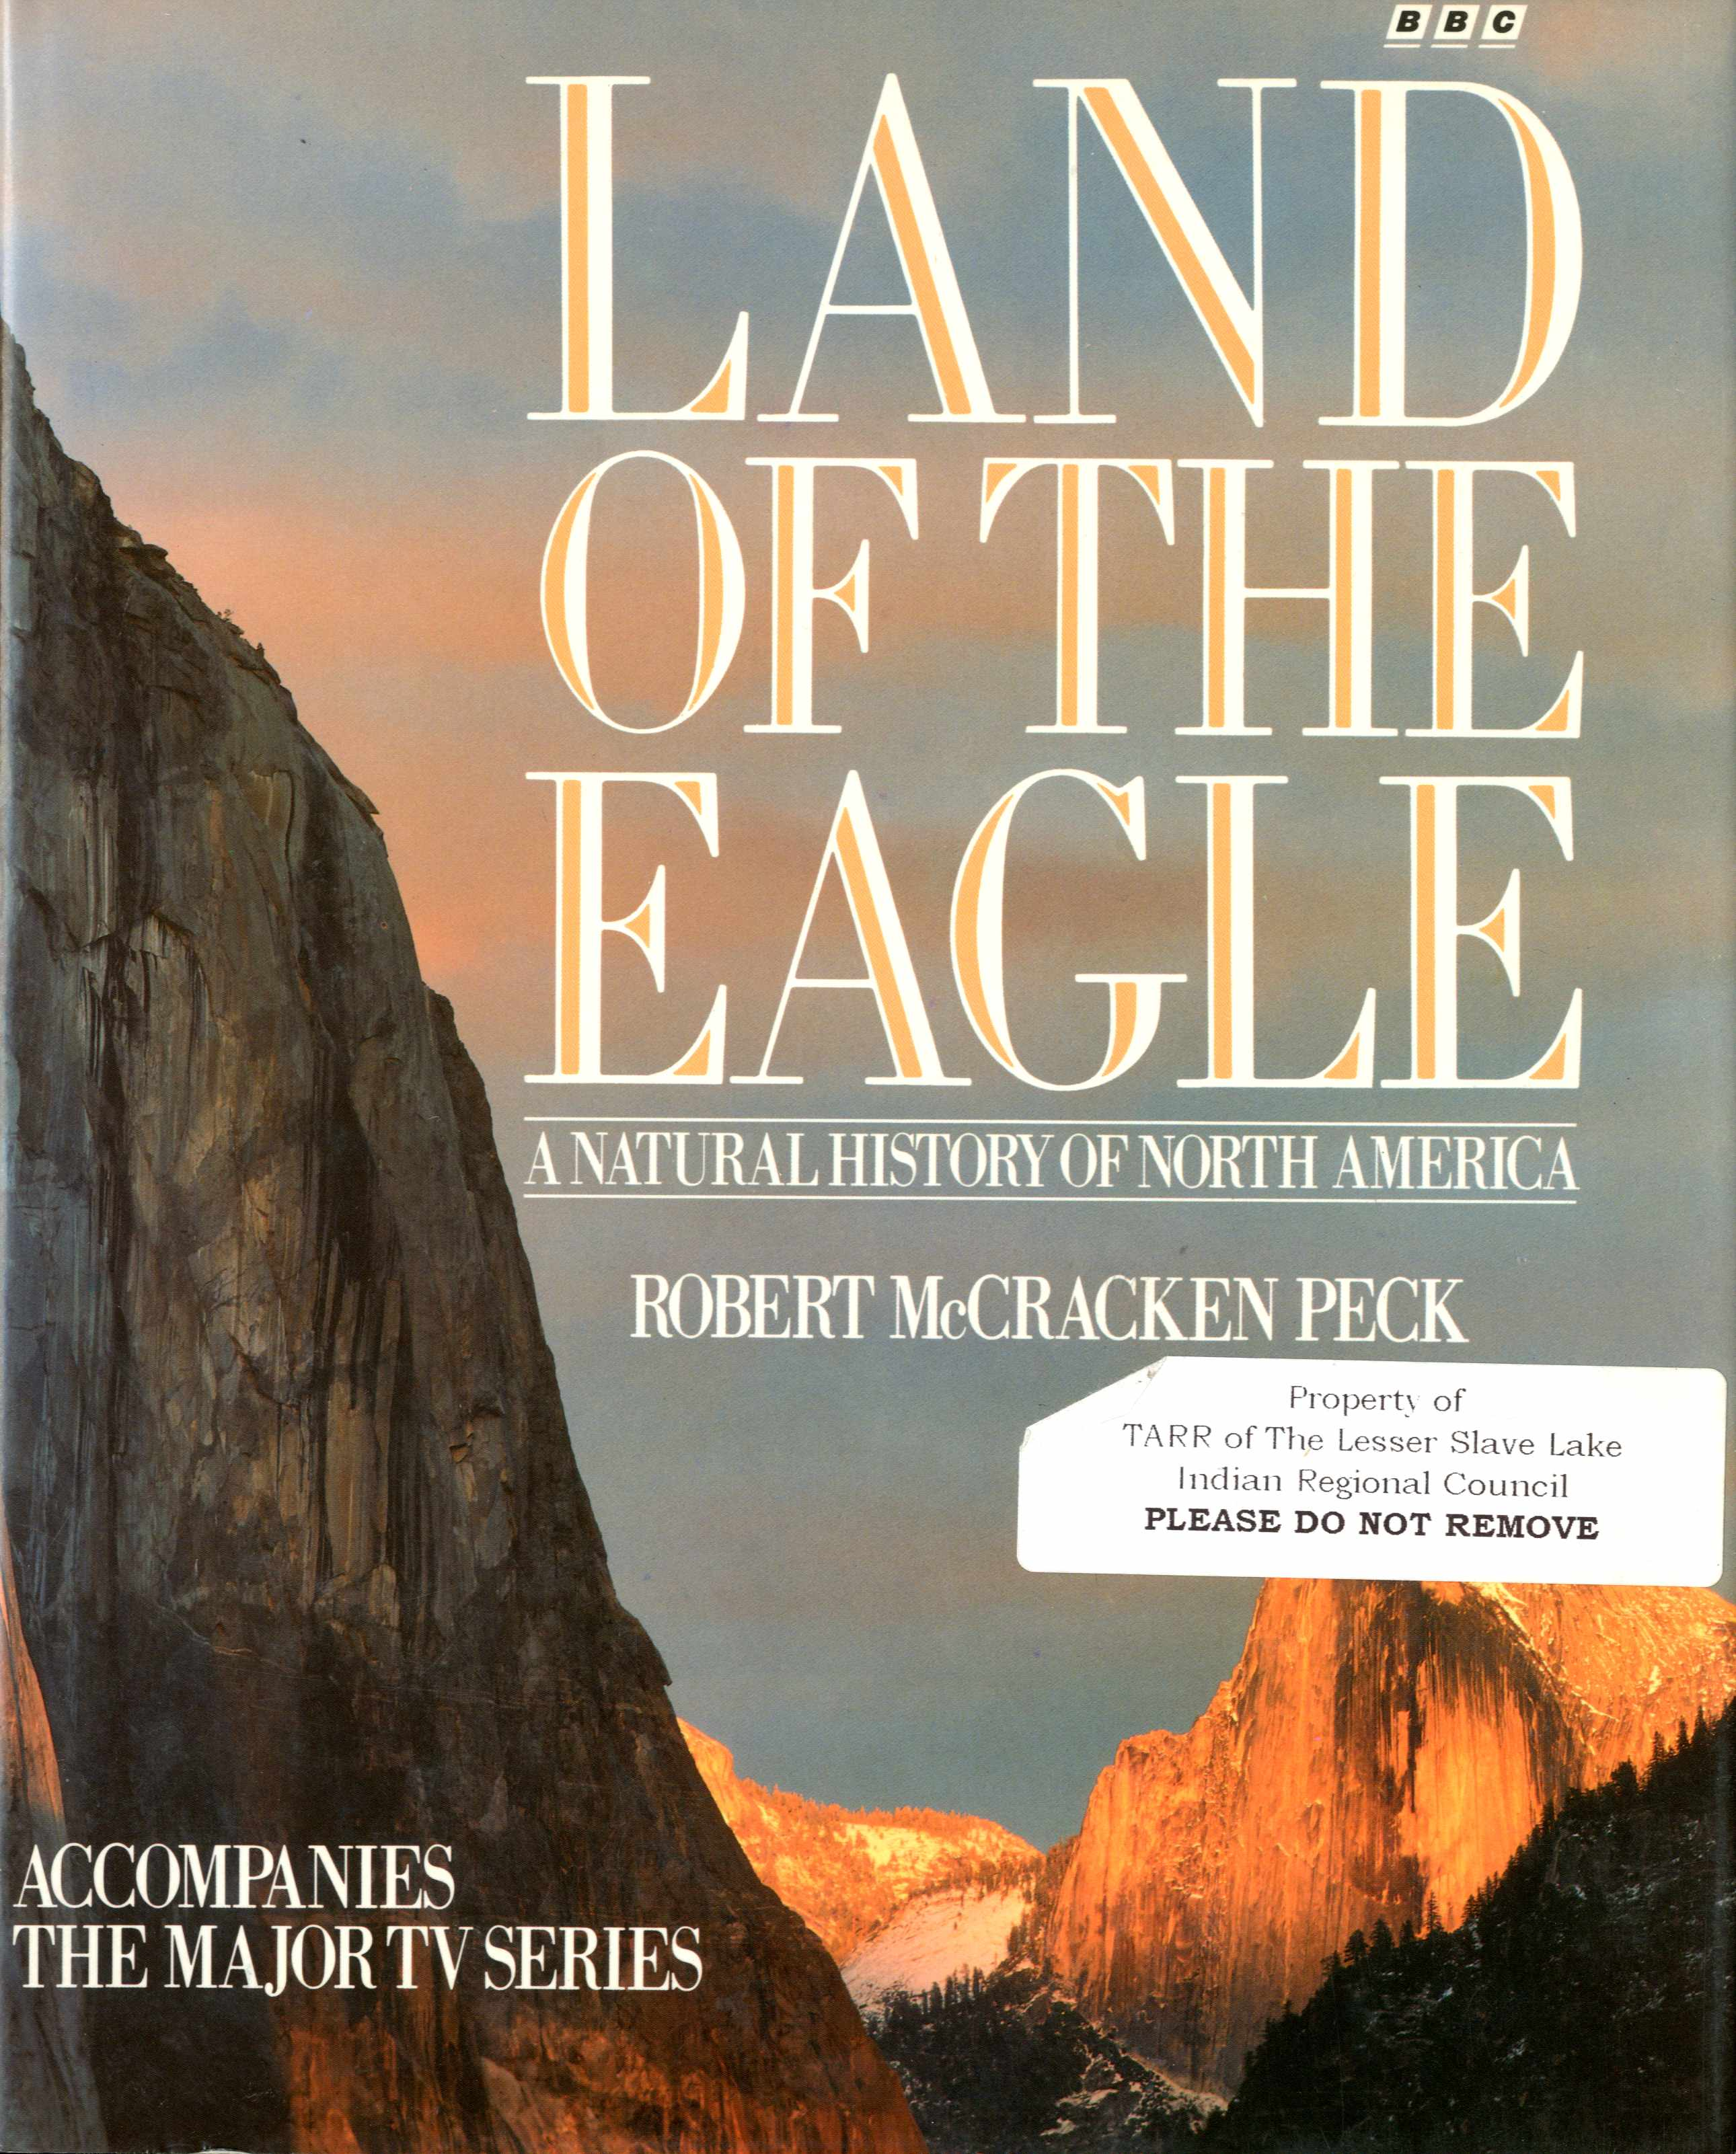 Land of the Eagle: A Natural History of North America Image